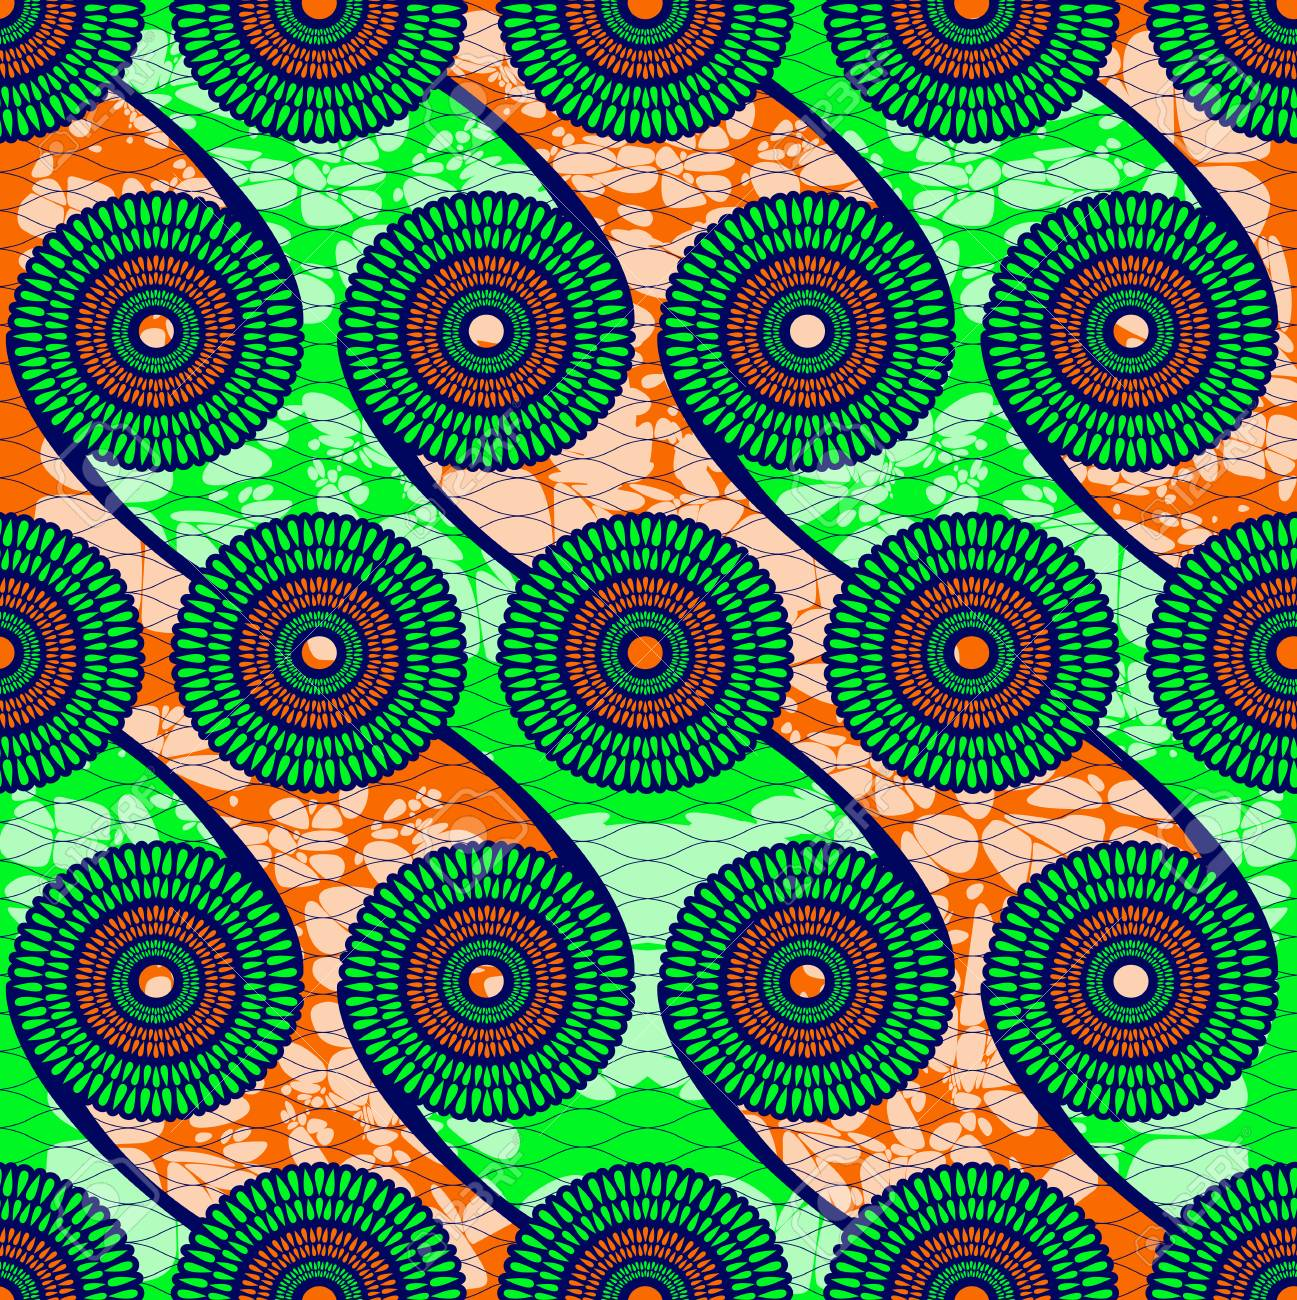 Textile fashion african print fabric super wax. vector illustration file. - 125535128